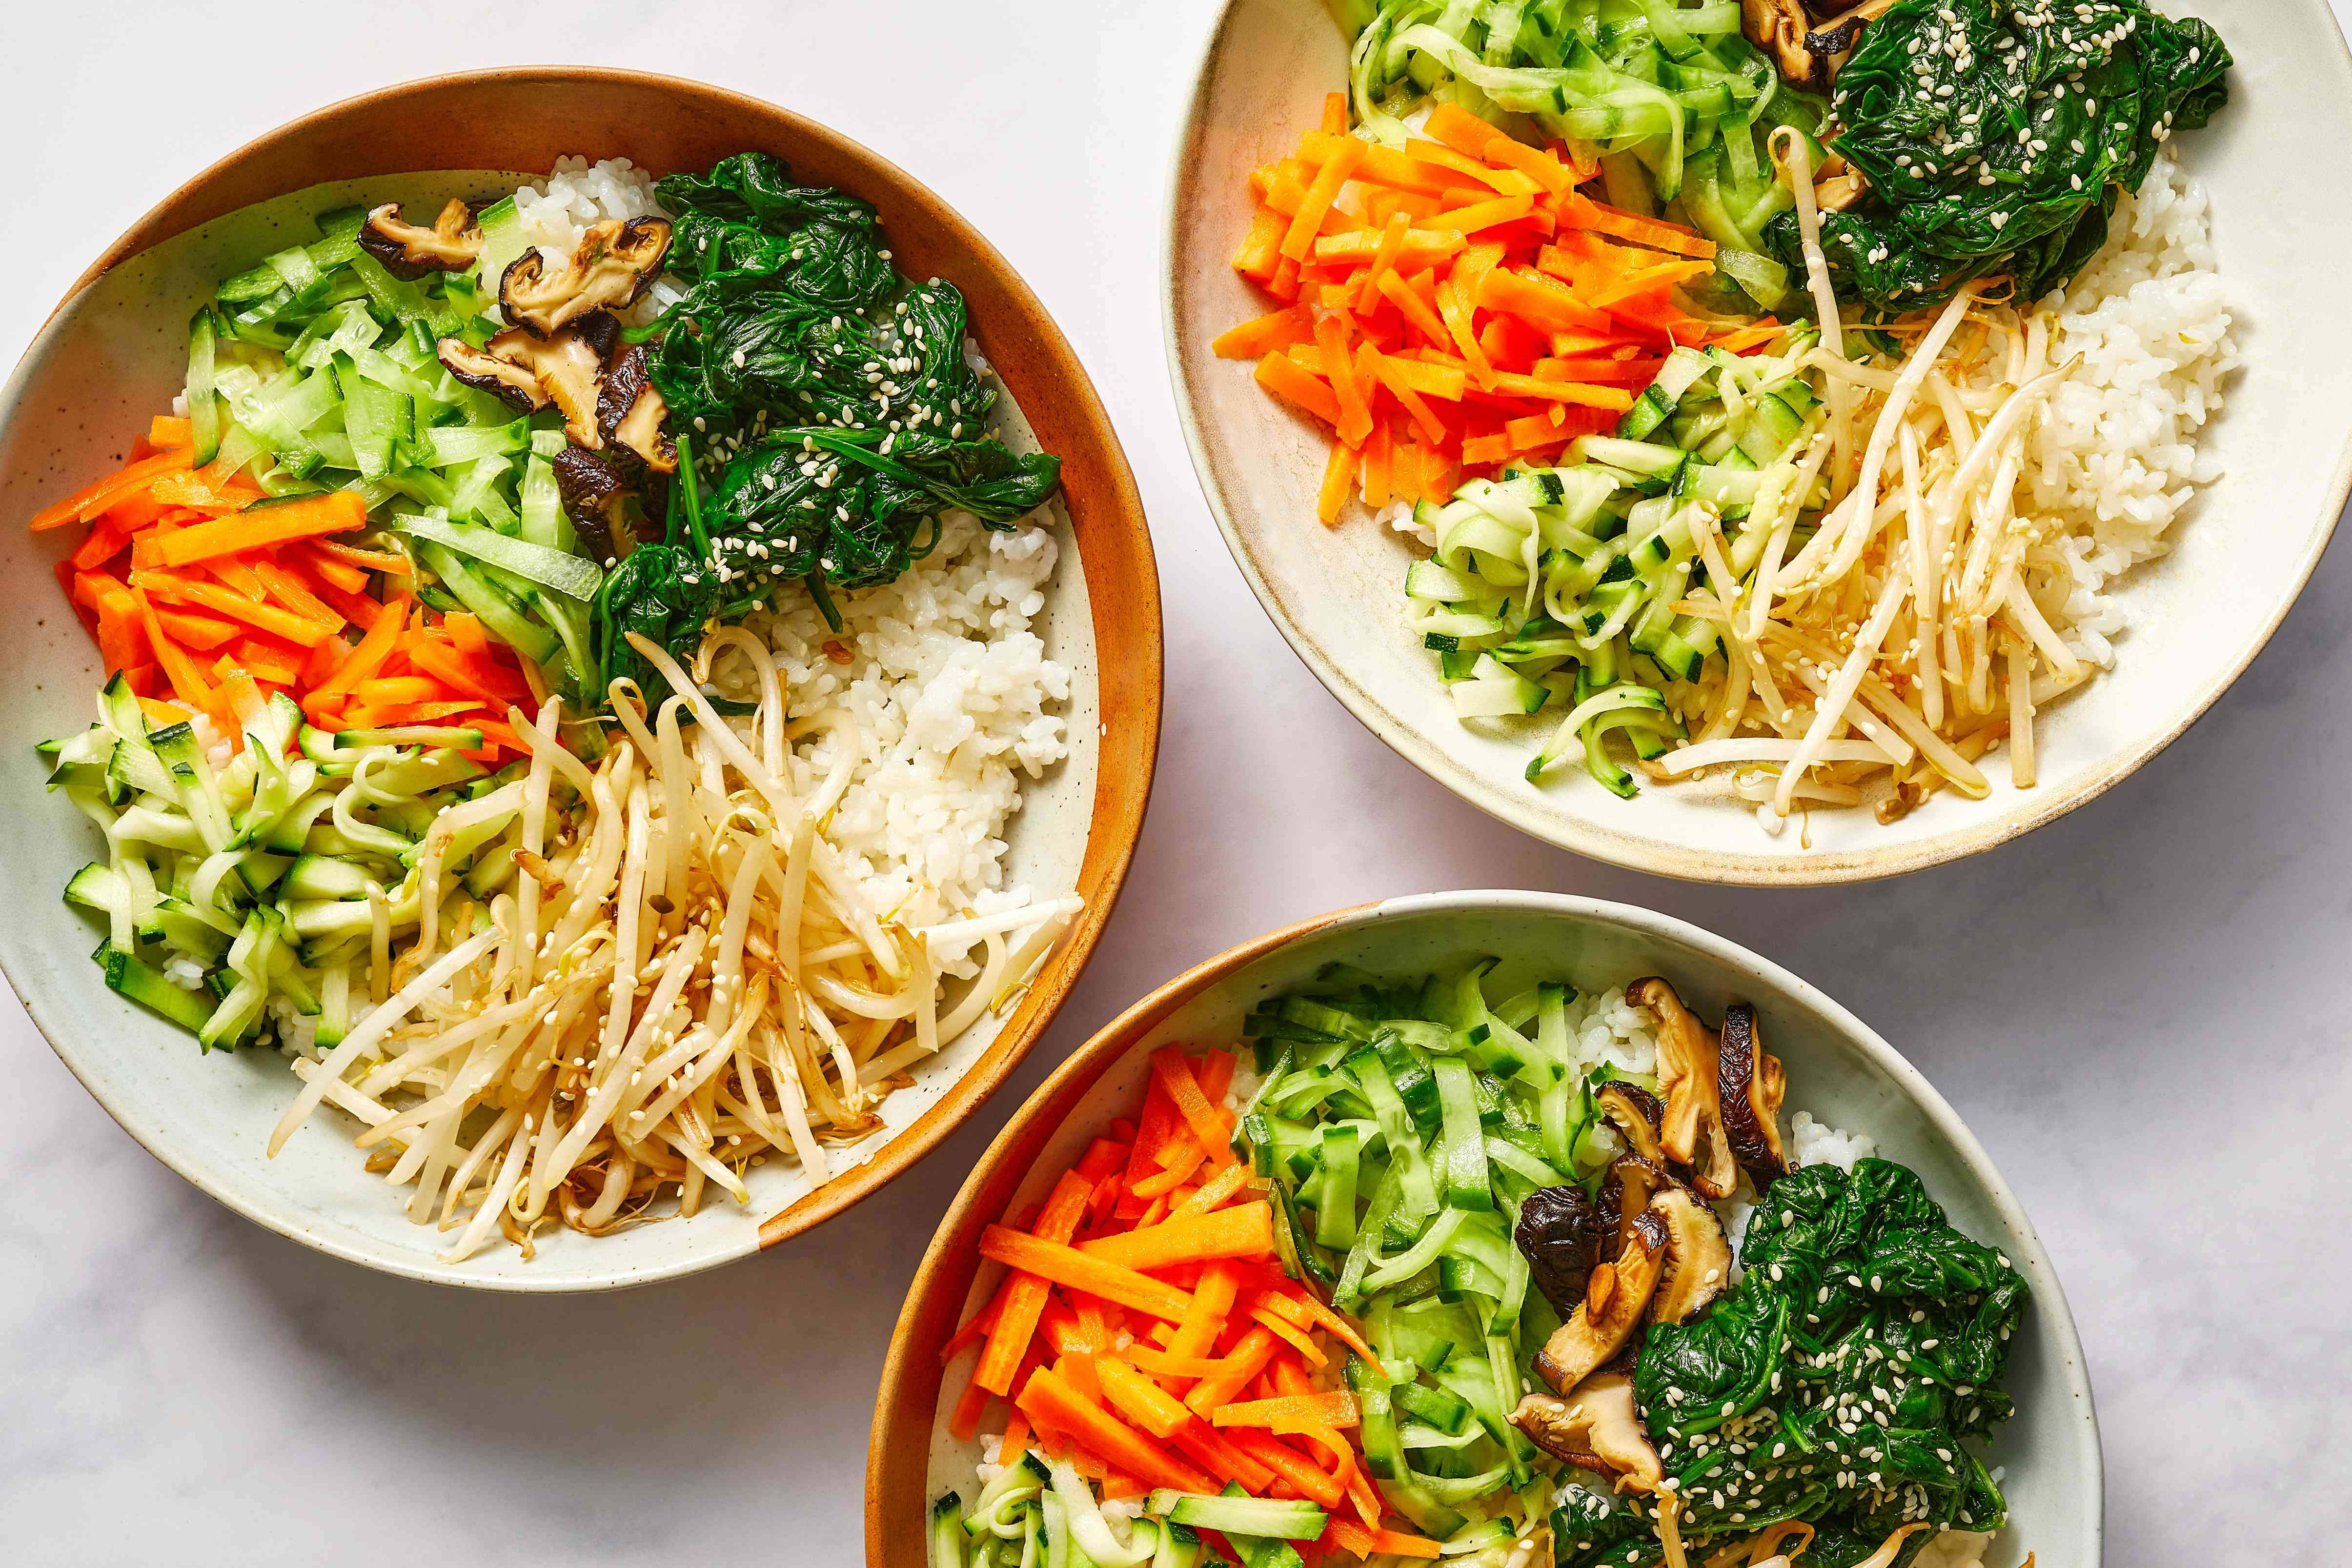 place the cooked rice in a large bowl and arrange vegetables on top